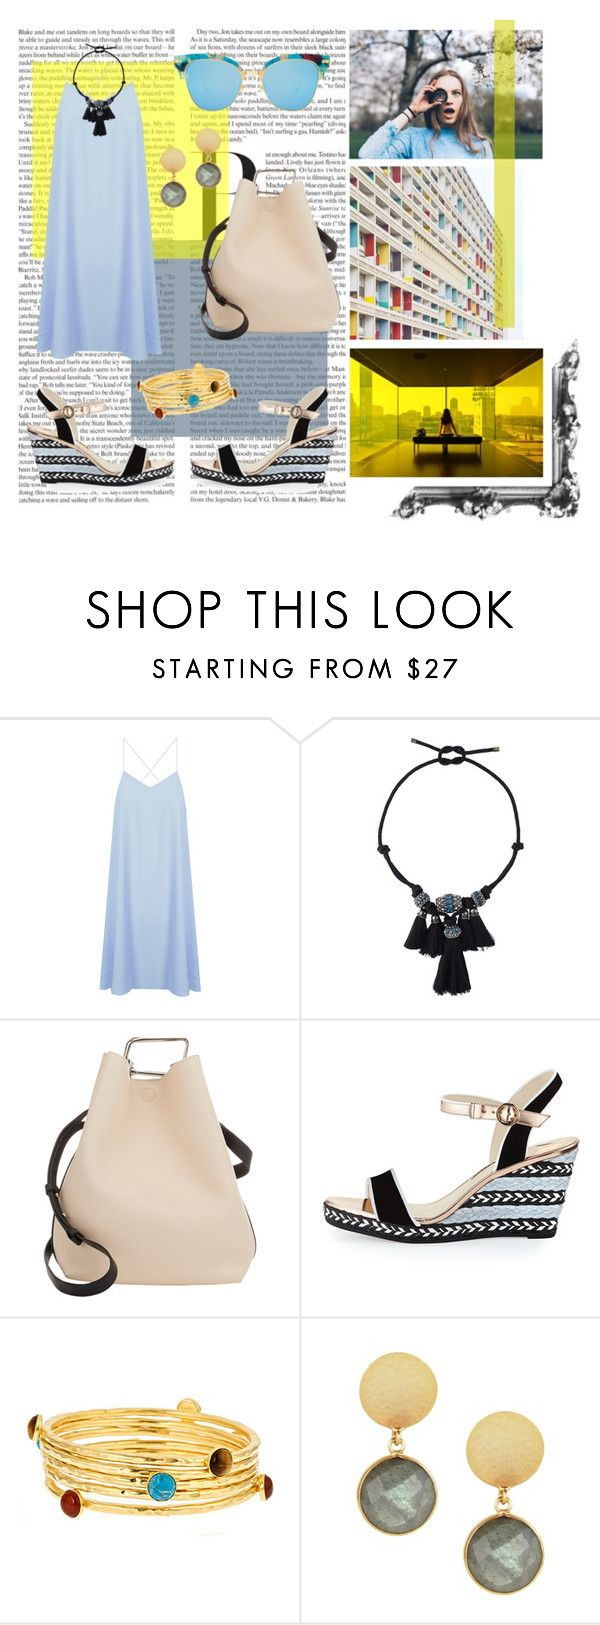 """""""June 18th 2016"""" by rania ❤ liked on Polyvore featuring Clare Nicolson, Sebastian Professional, Glamorous, Lanvin, 3.1 Phillip Lim, Sophia Webster, Bita Pourtavoosi and Feather & Stone"""